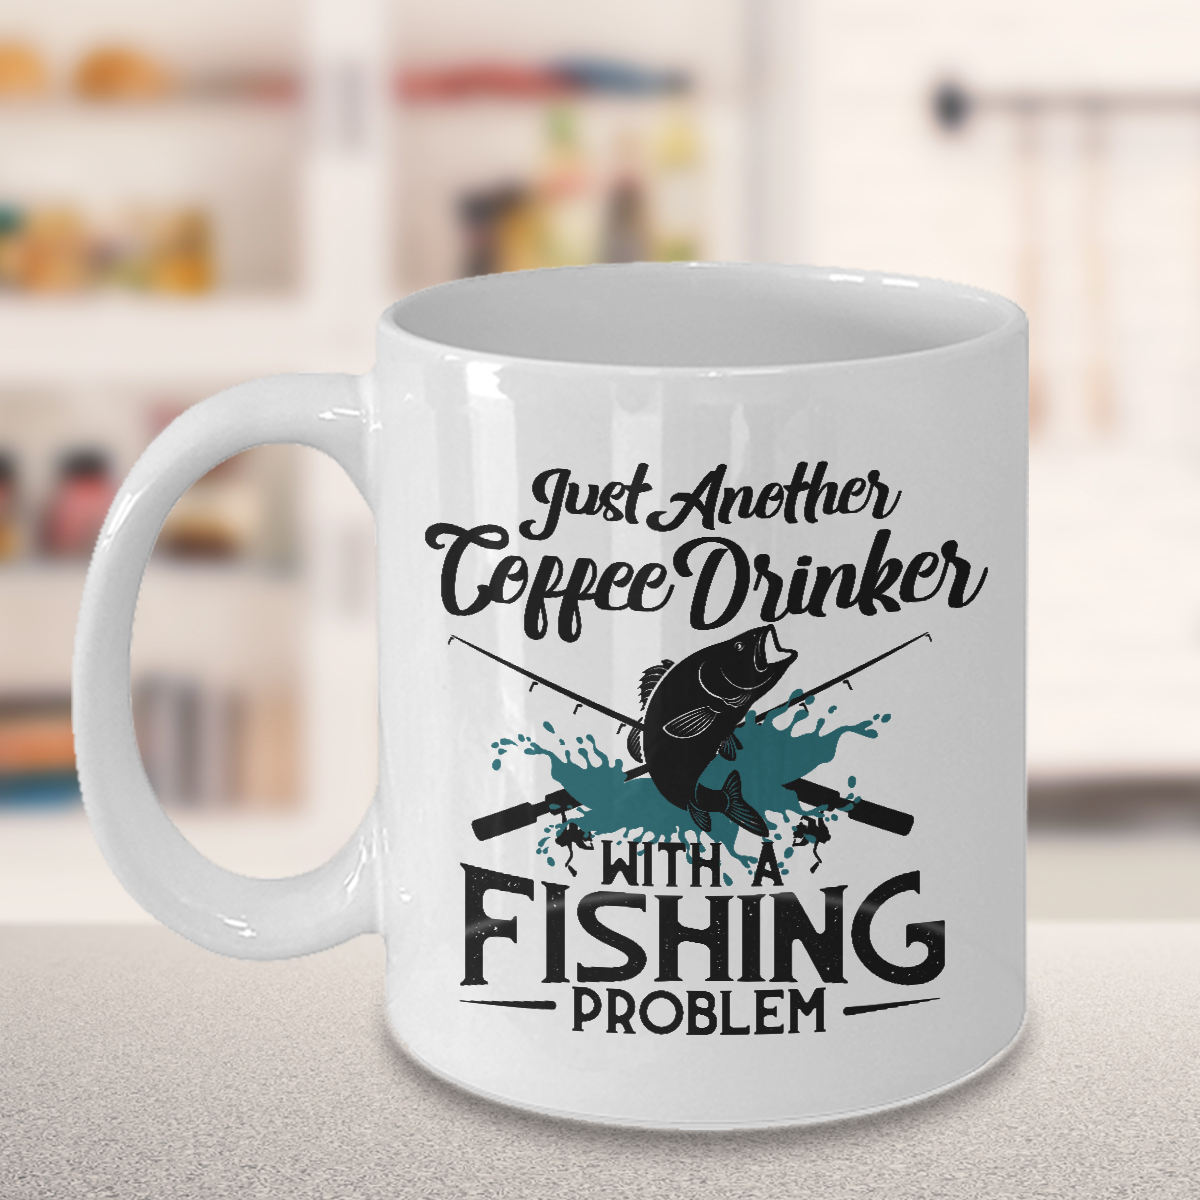 A coffee drinker with a fishing problem. Funny mugs